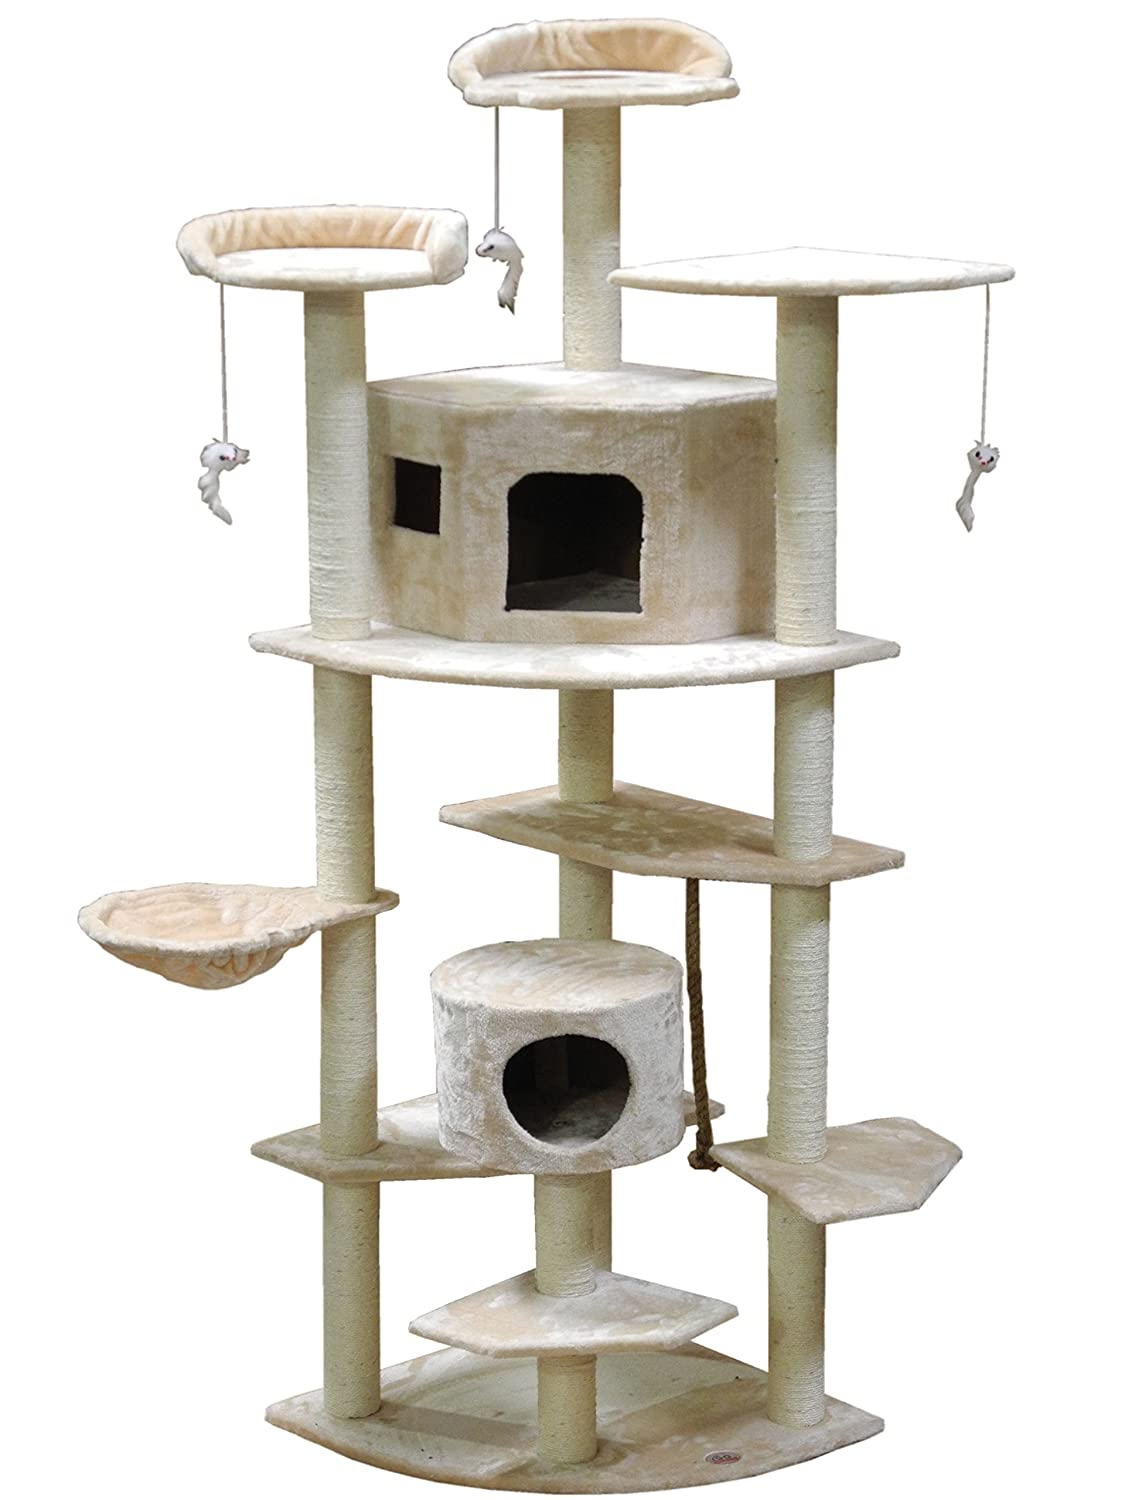 amazoncom  go pet club cat tree inch beige  cat climbing  - amazoncom  go pet club cat tree inch beige  cat climbing tower pet supplies